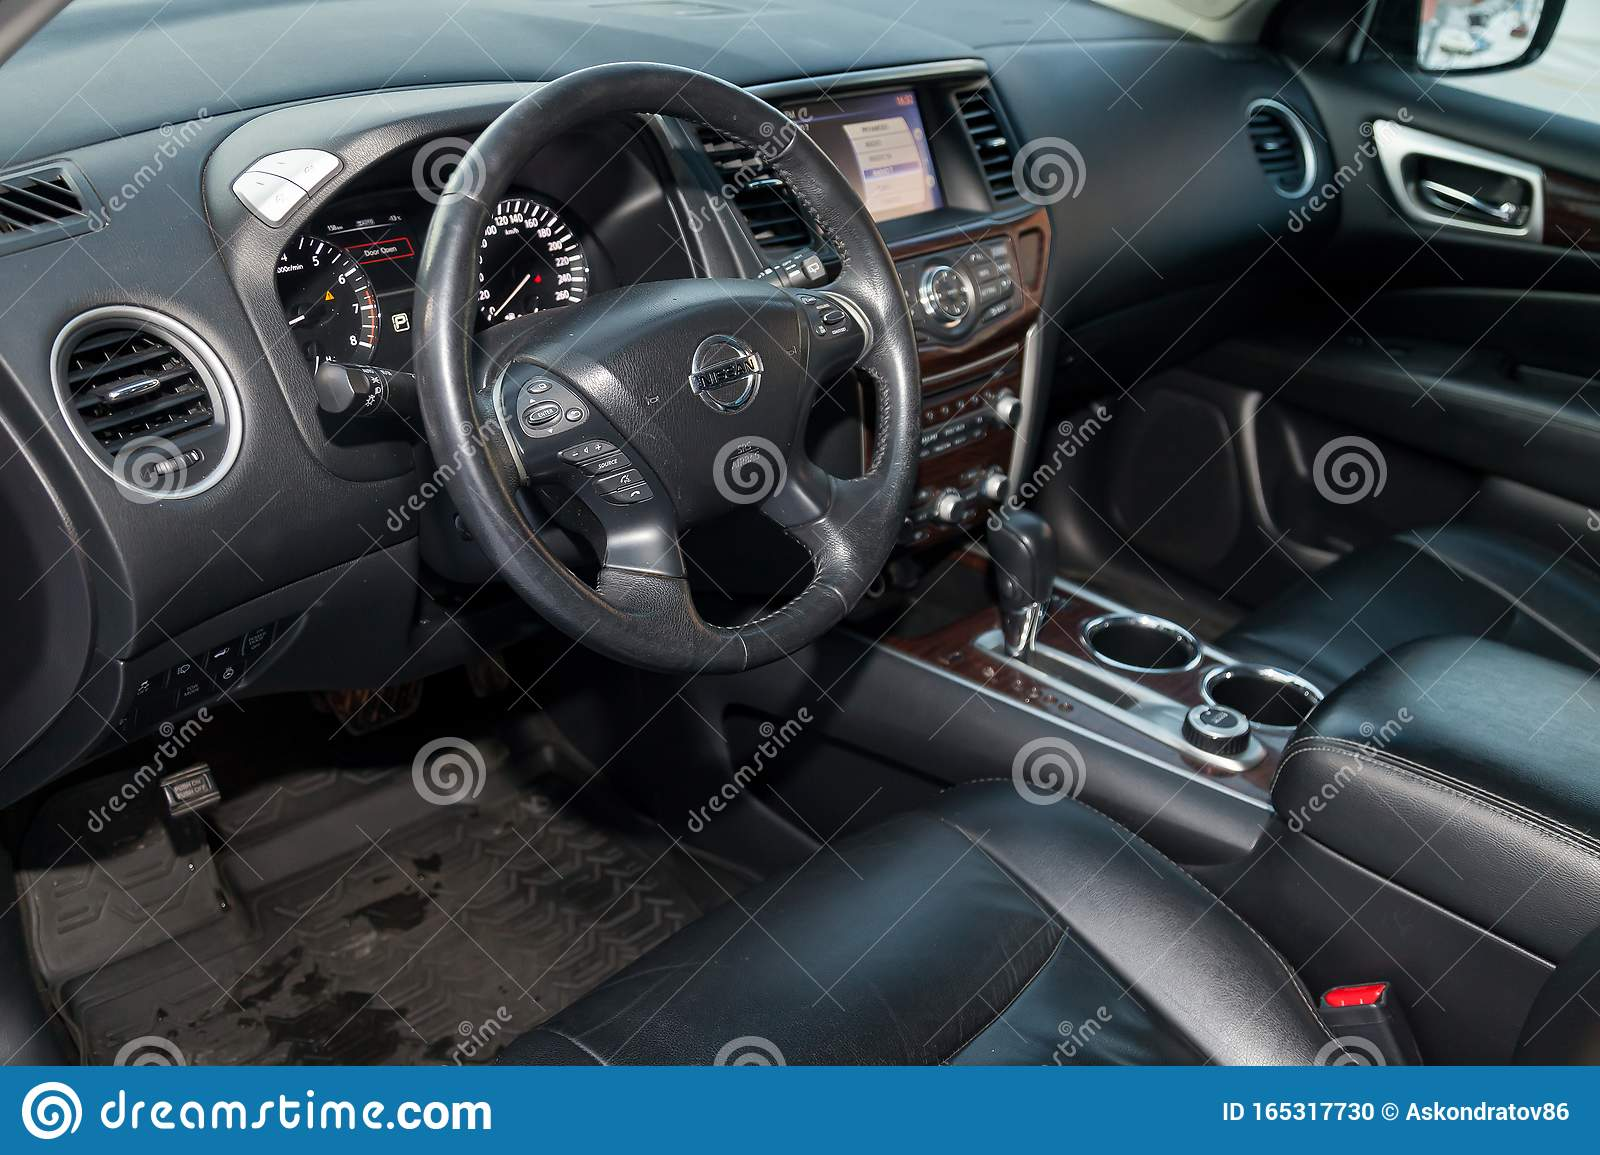 View To The Interior Of Nissan Pathfinder 2015 With Dashboard Clock Media System Front Seats And Steering Wheel After Cleaning Editorial Image Image Of Seat Dashboard 165317730